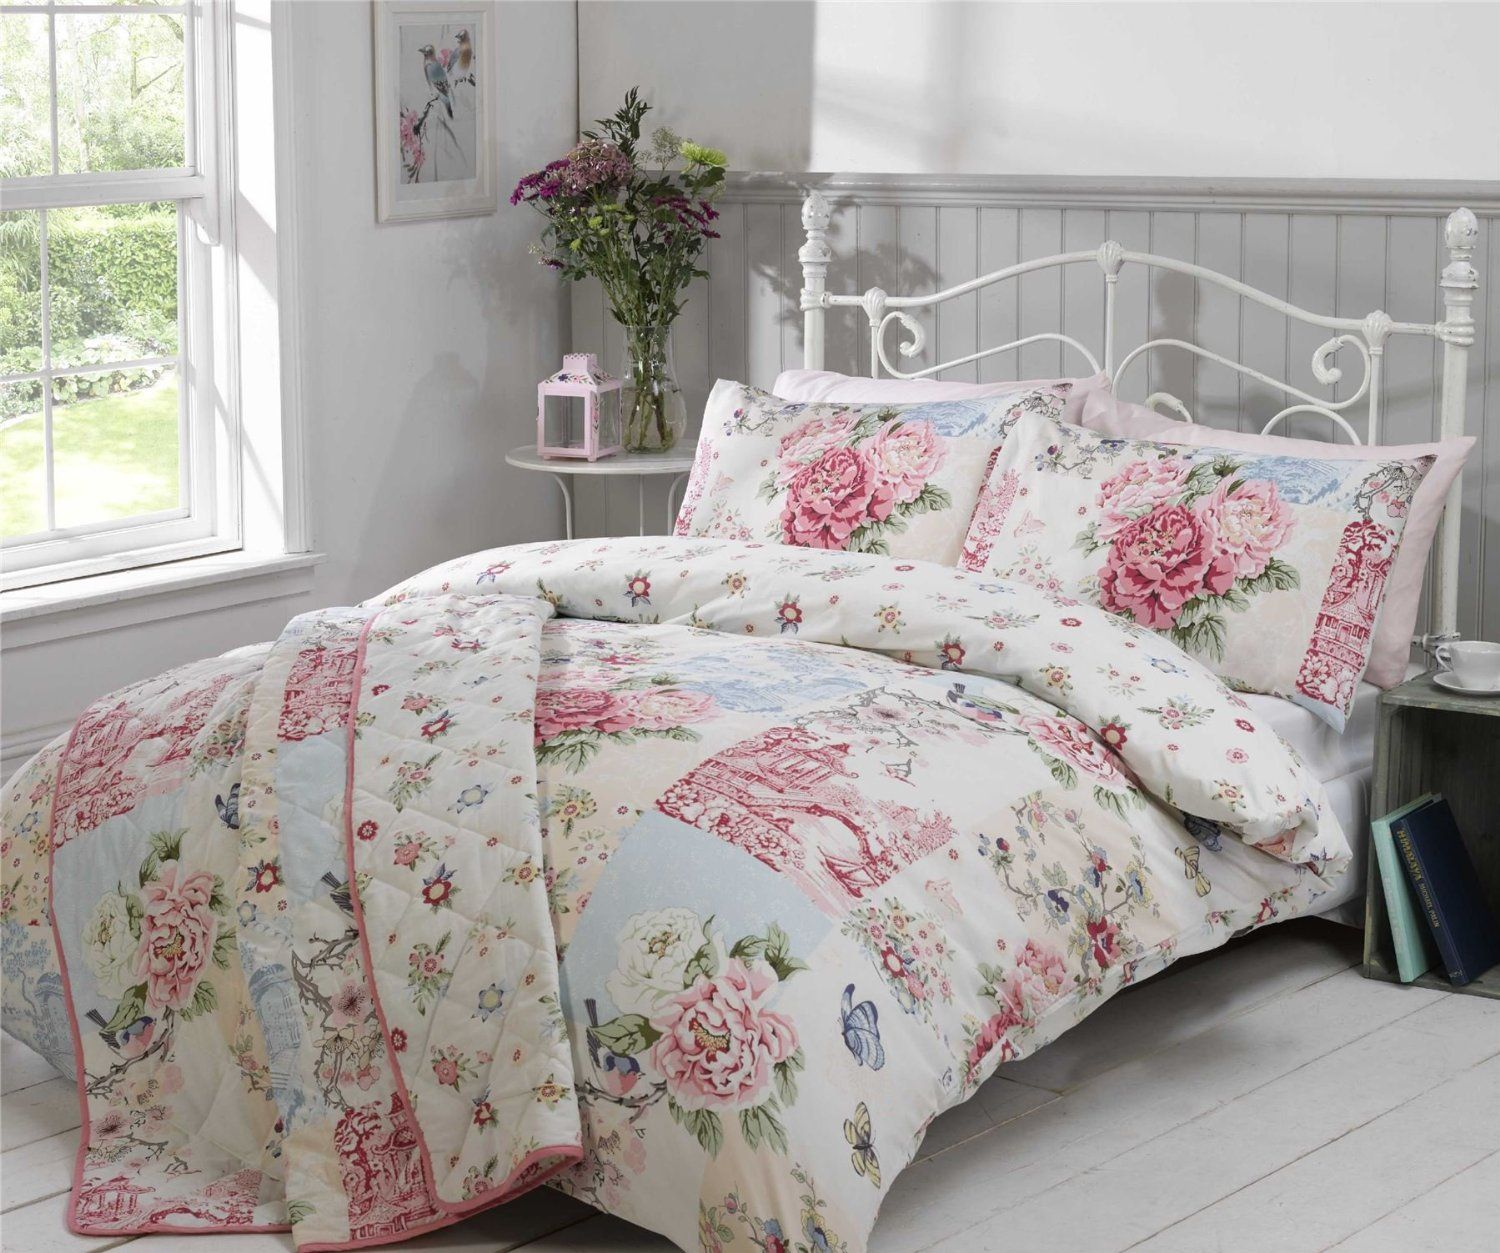 Kuche Rosali Patchwork Pink Blue Floral Butterfly Willow Bird Canadian Twin